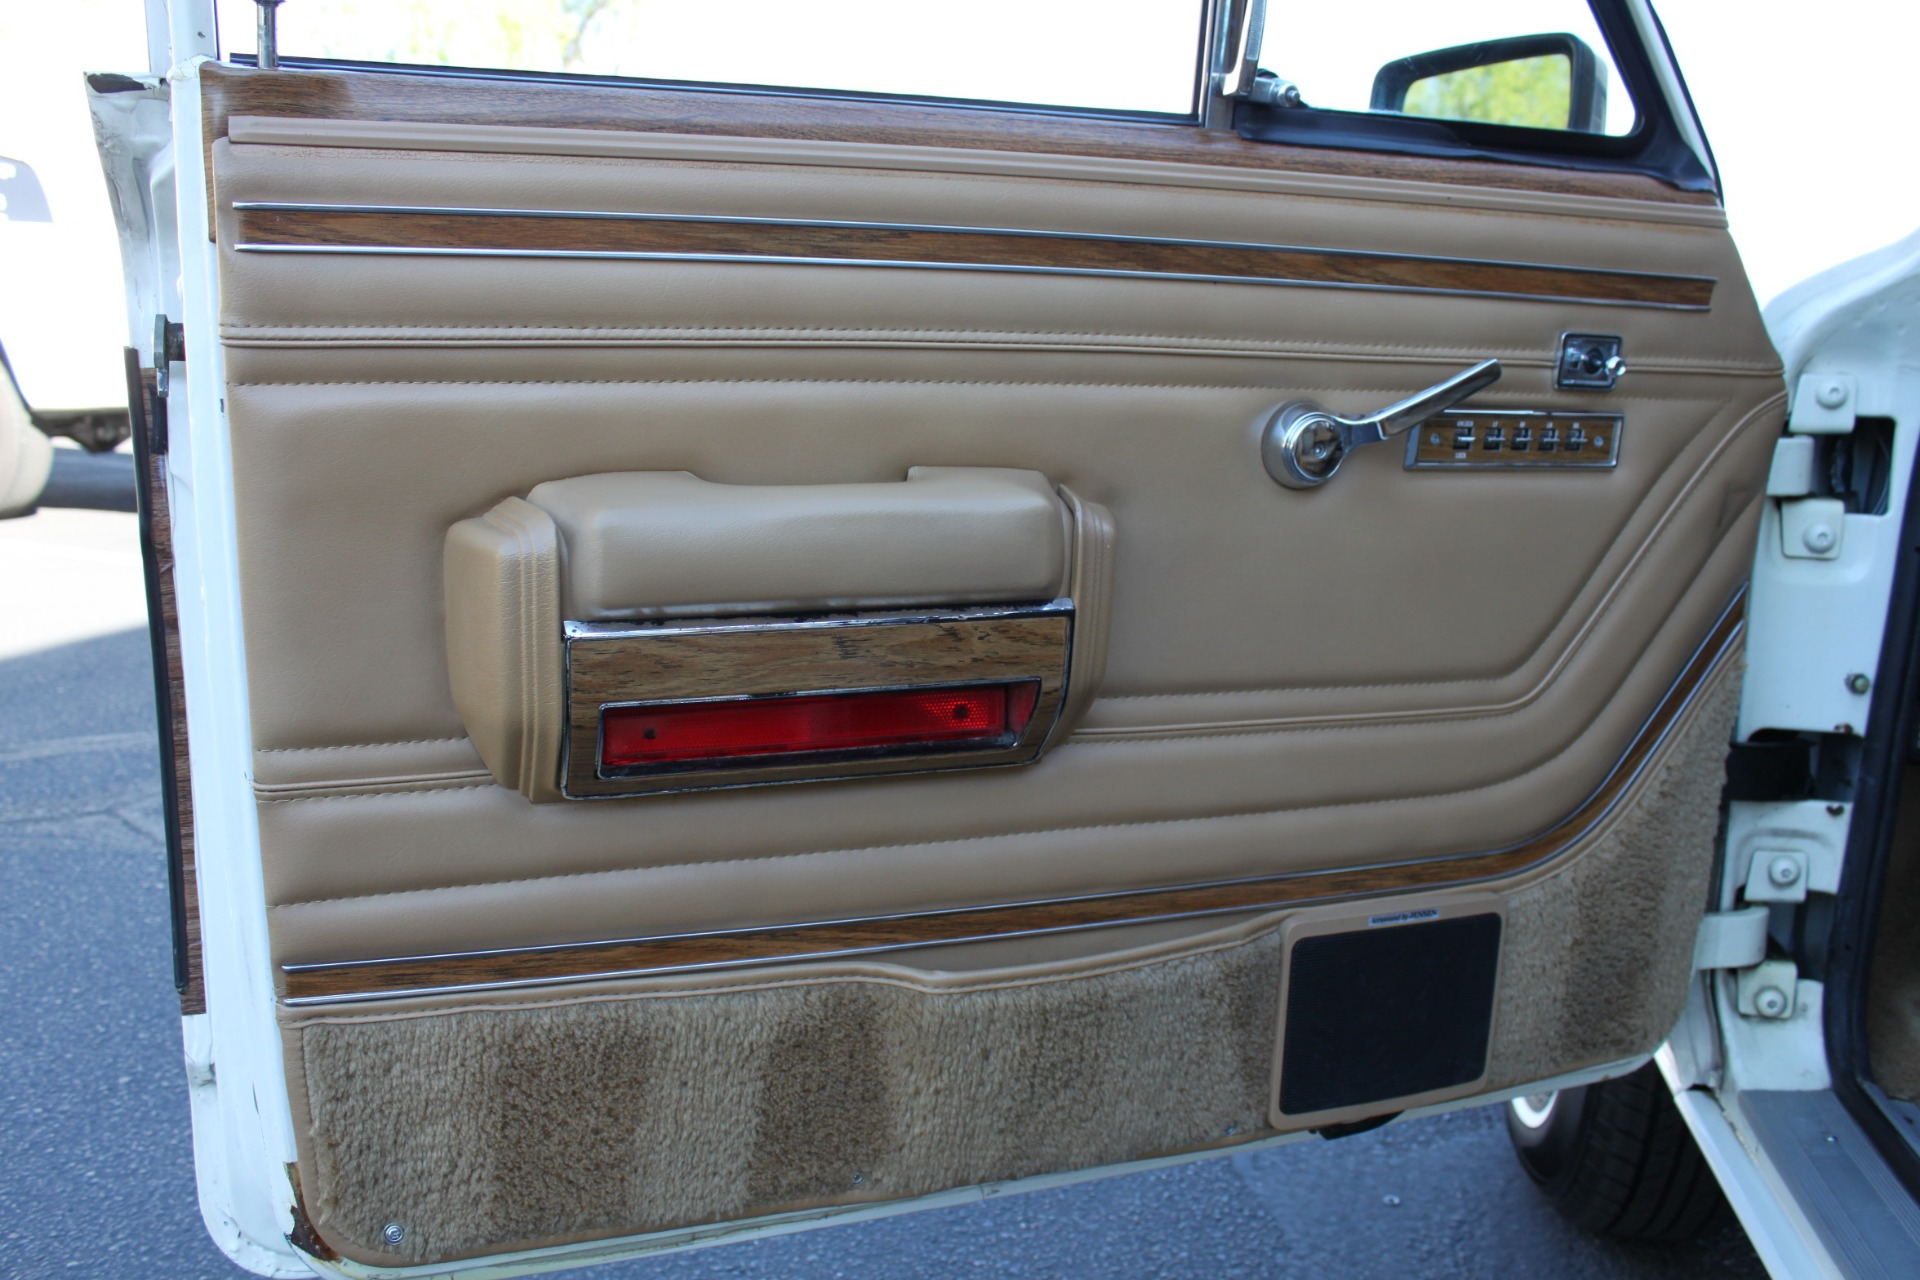 Used-1987-Jeep-Grand-Wagoneer-Lincoln